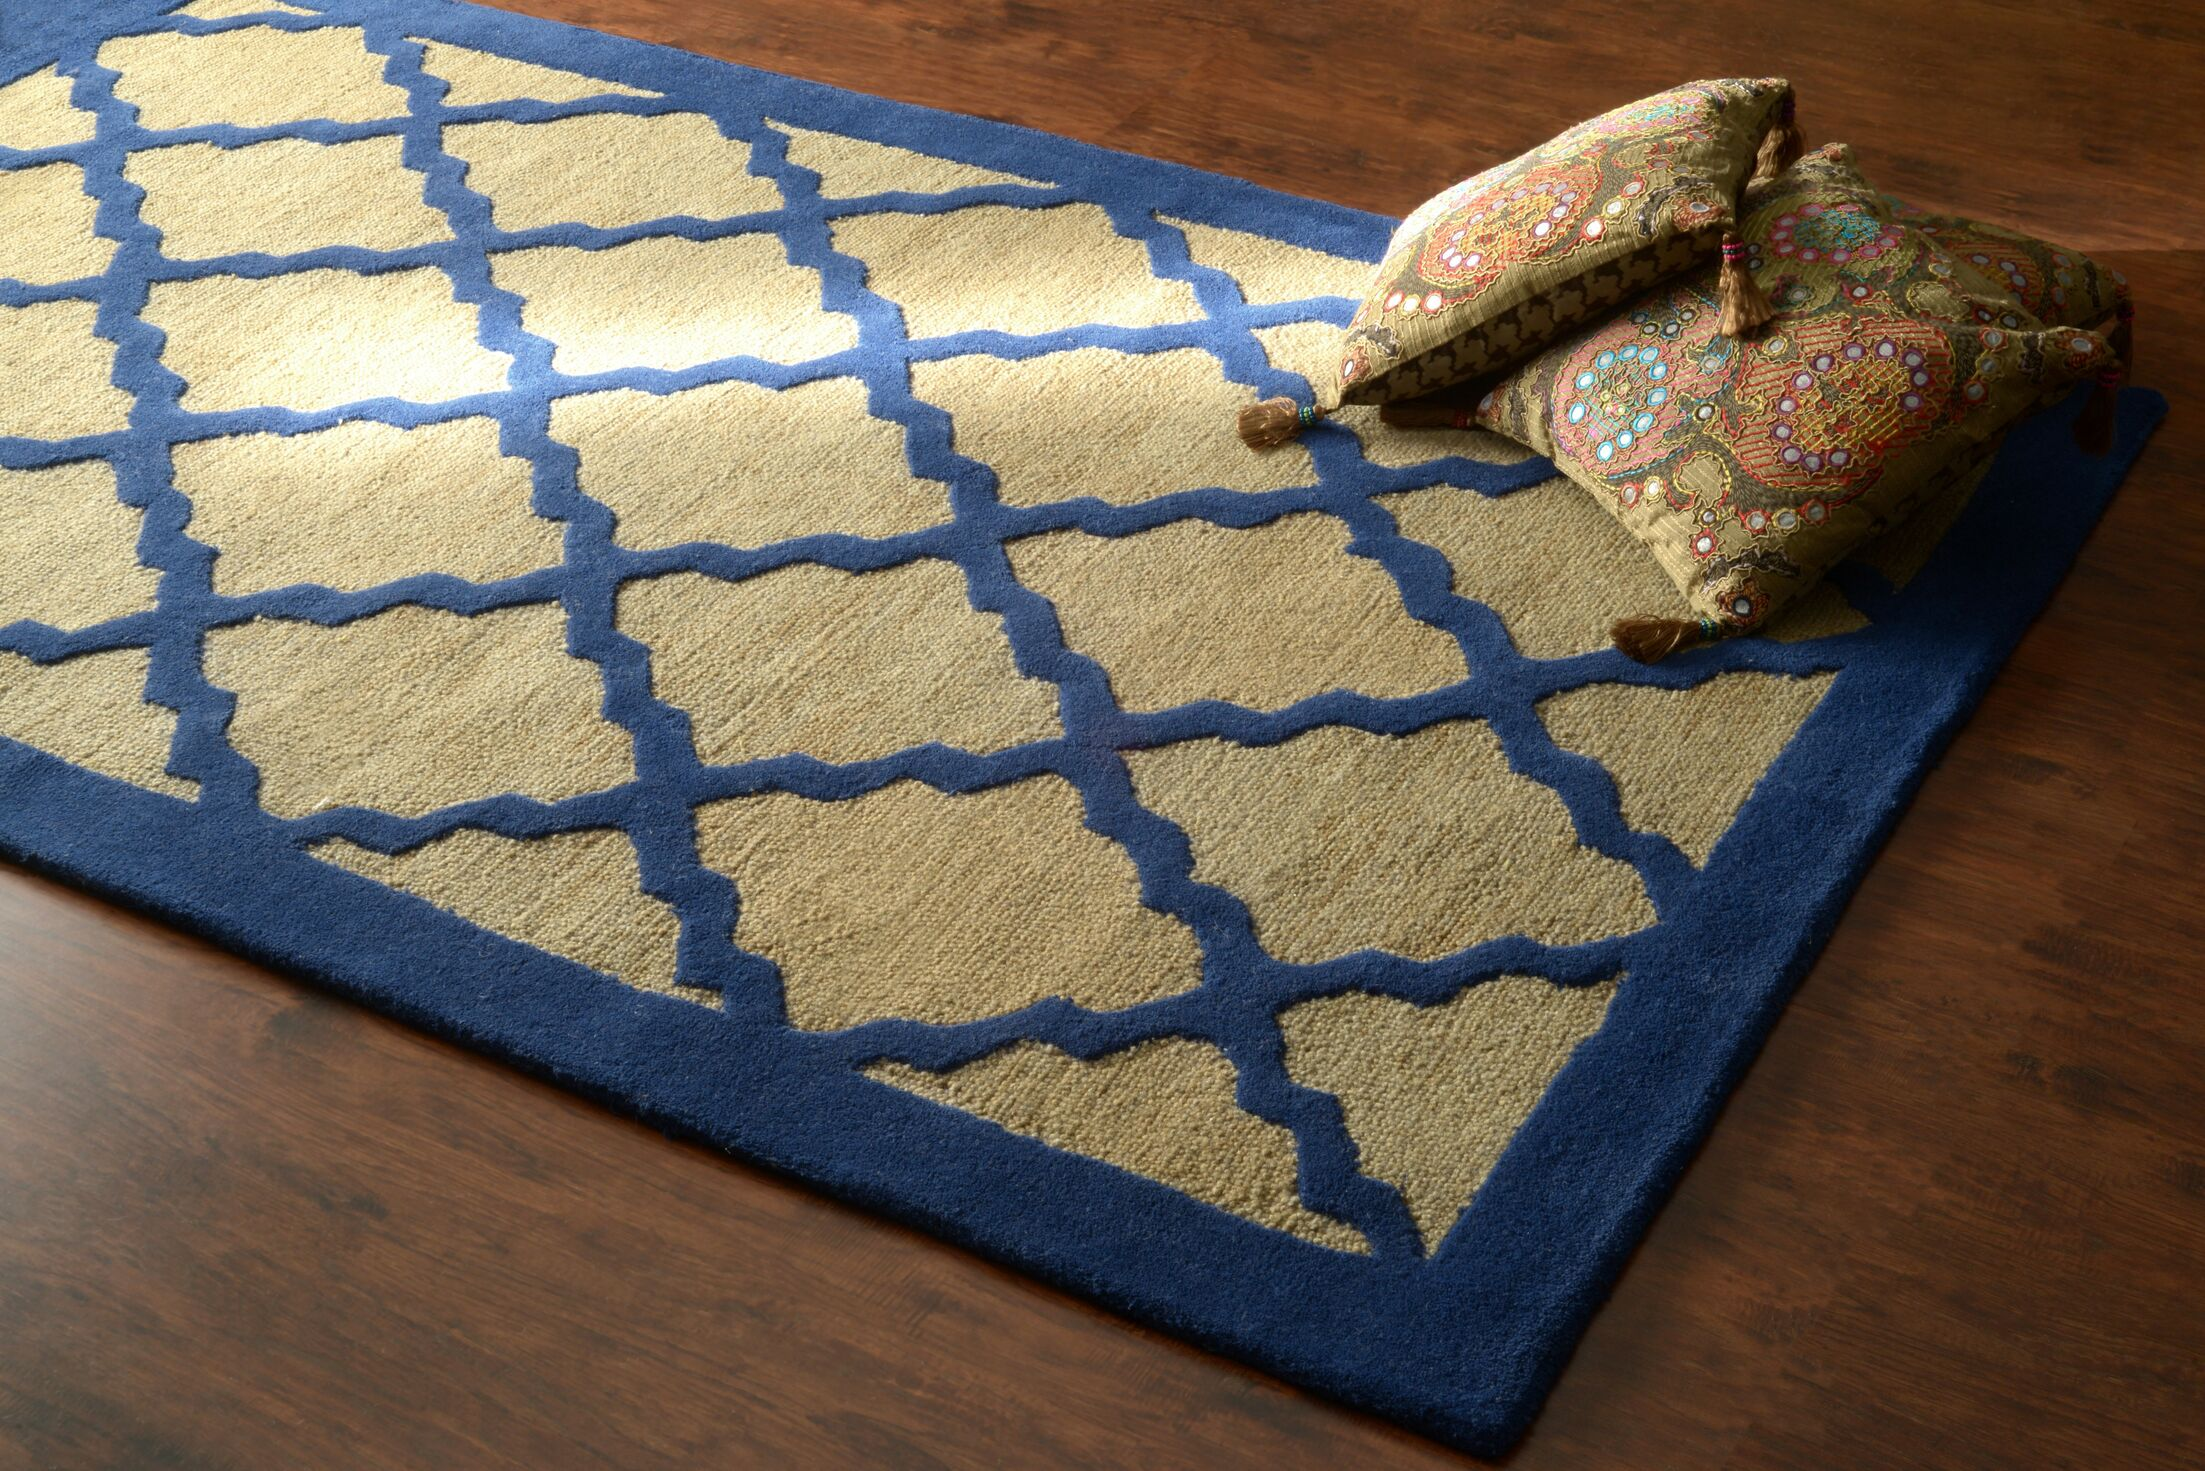 Varanas Hand-Woven Wool Blue/Yellow Area Rug Rug Size: Rectangle 8'6